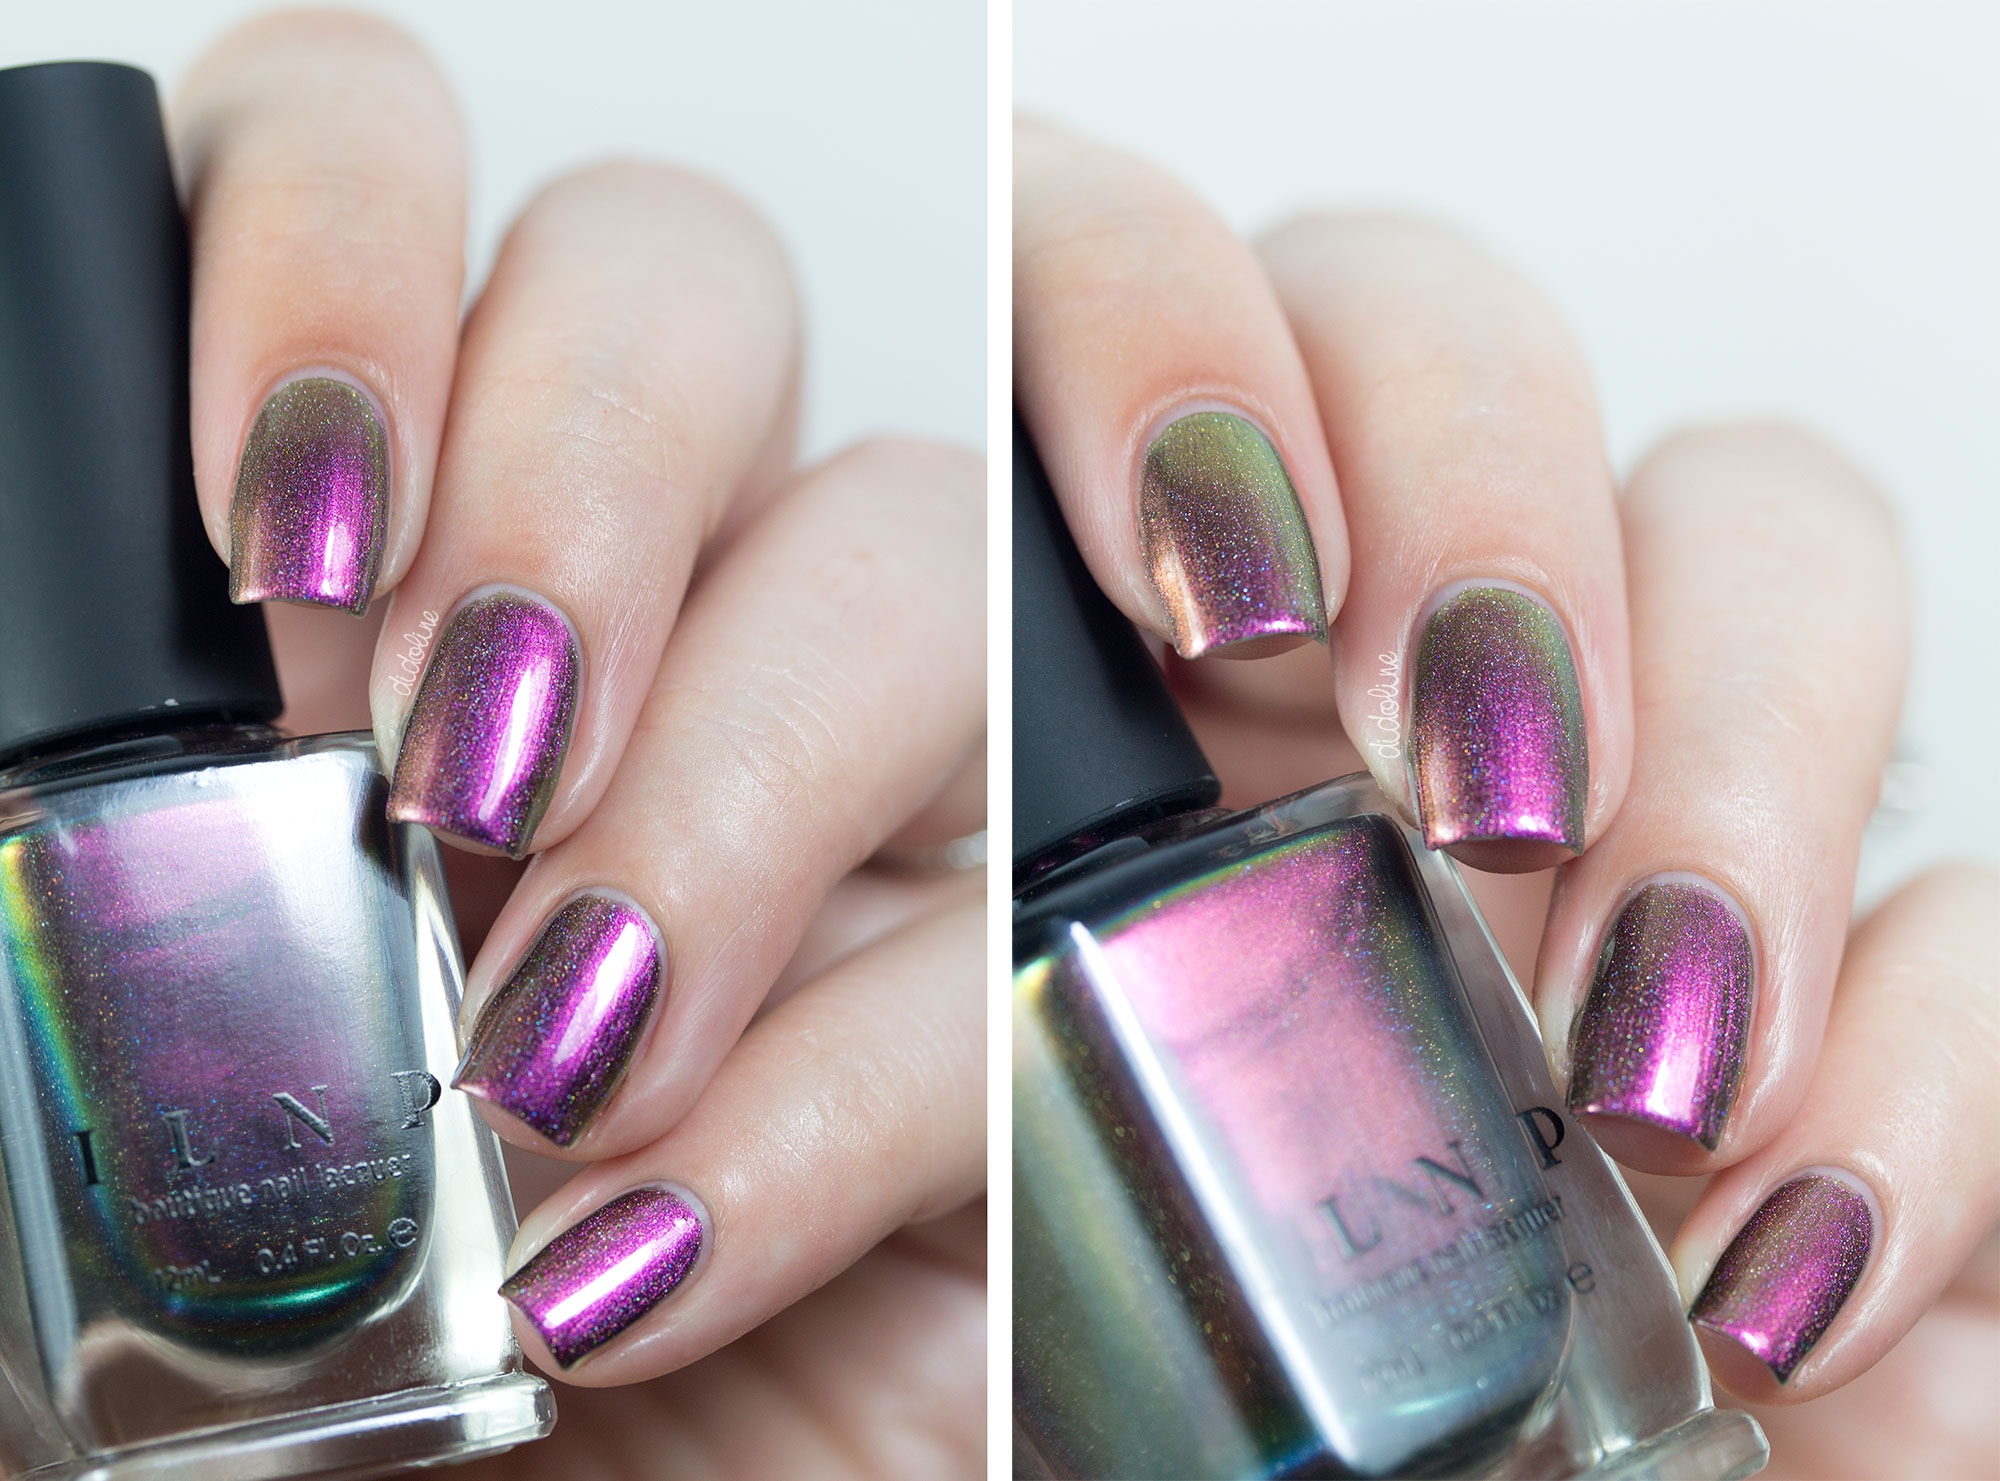 ILNP - Cameo (H)